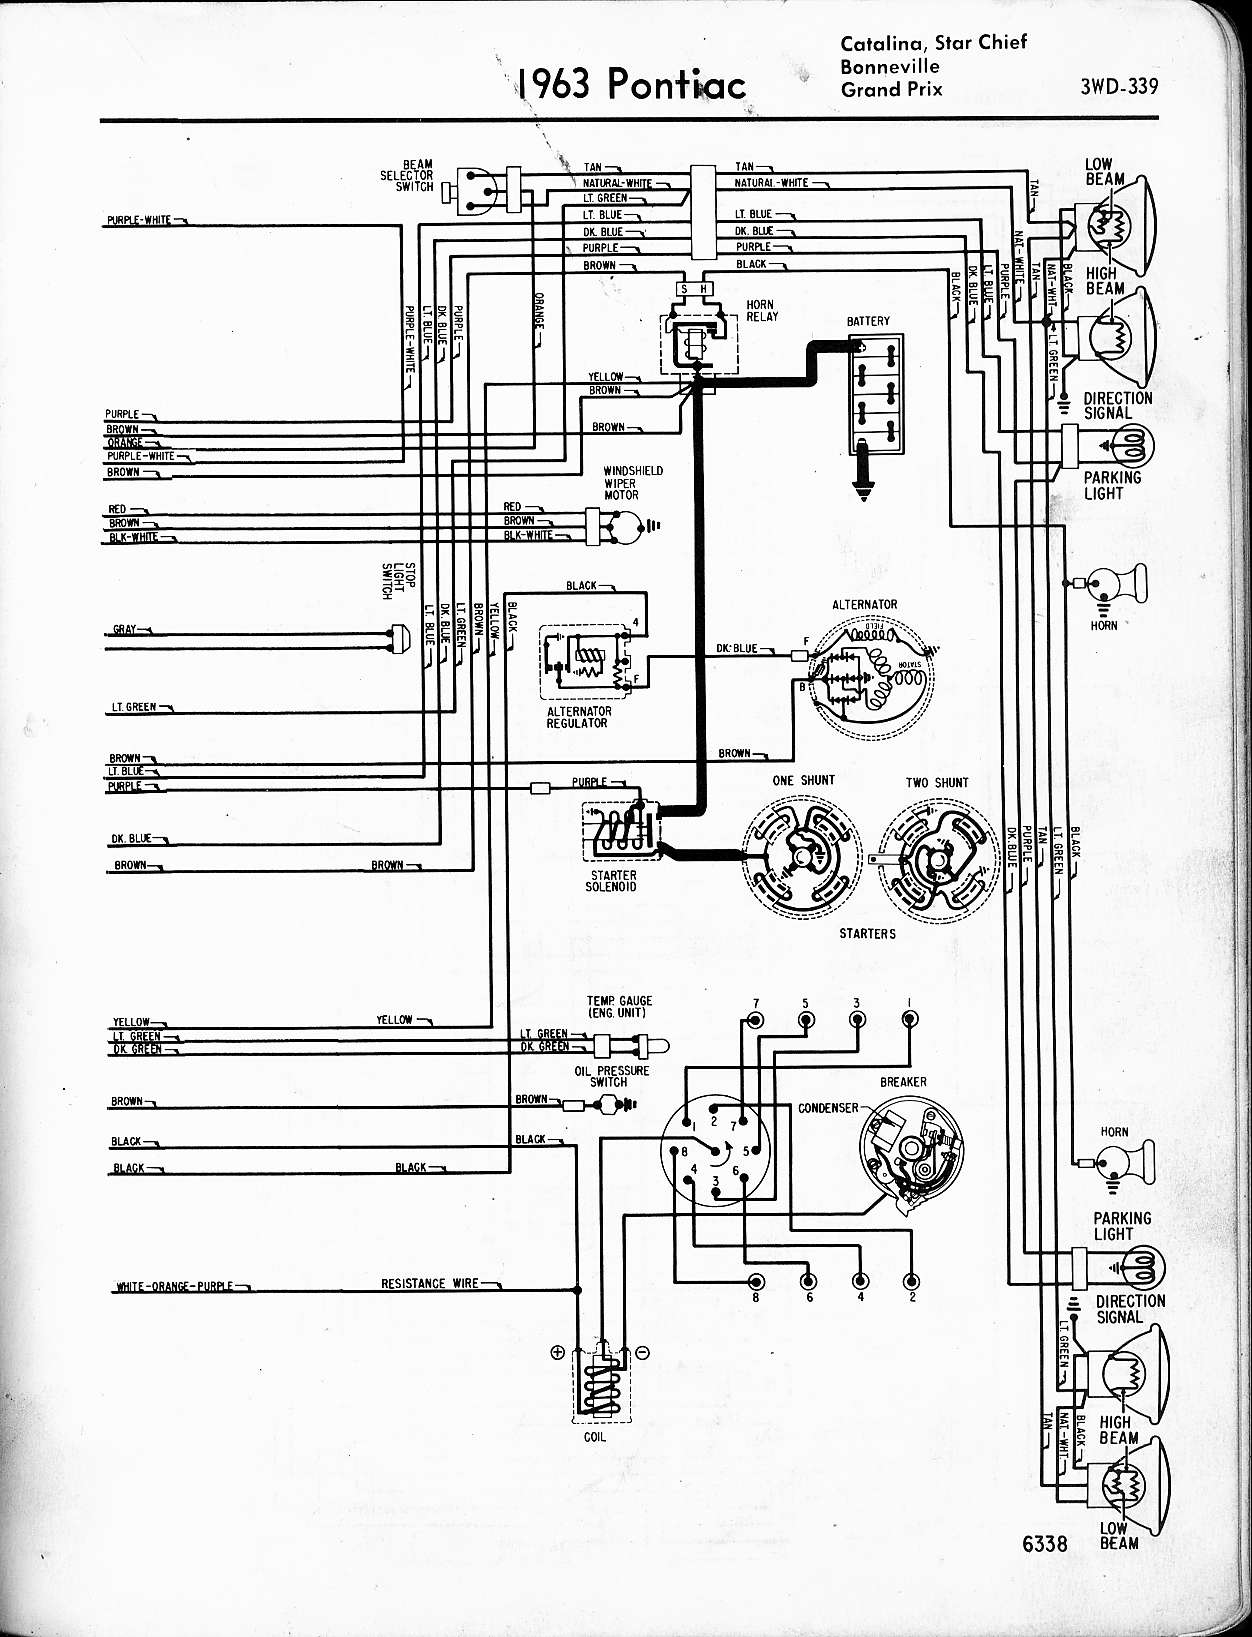 wrg 3749 pontiac bonneville wiring diagram. Black Bedroom Furniture Sets. Home Design Ideas